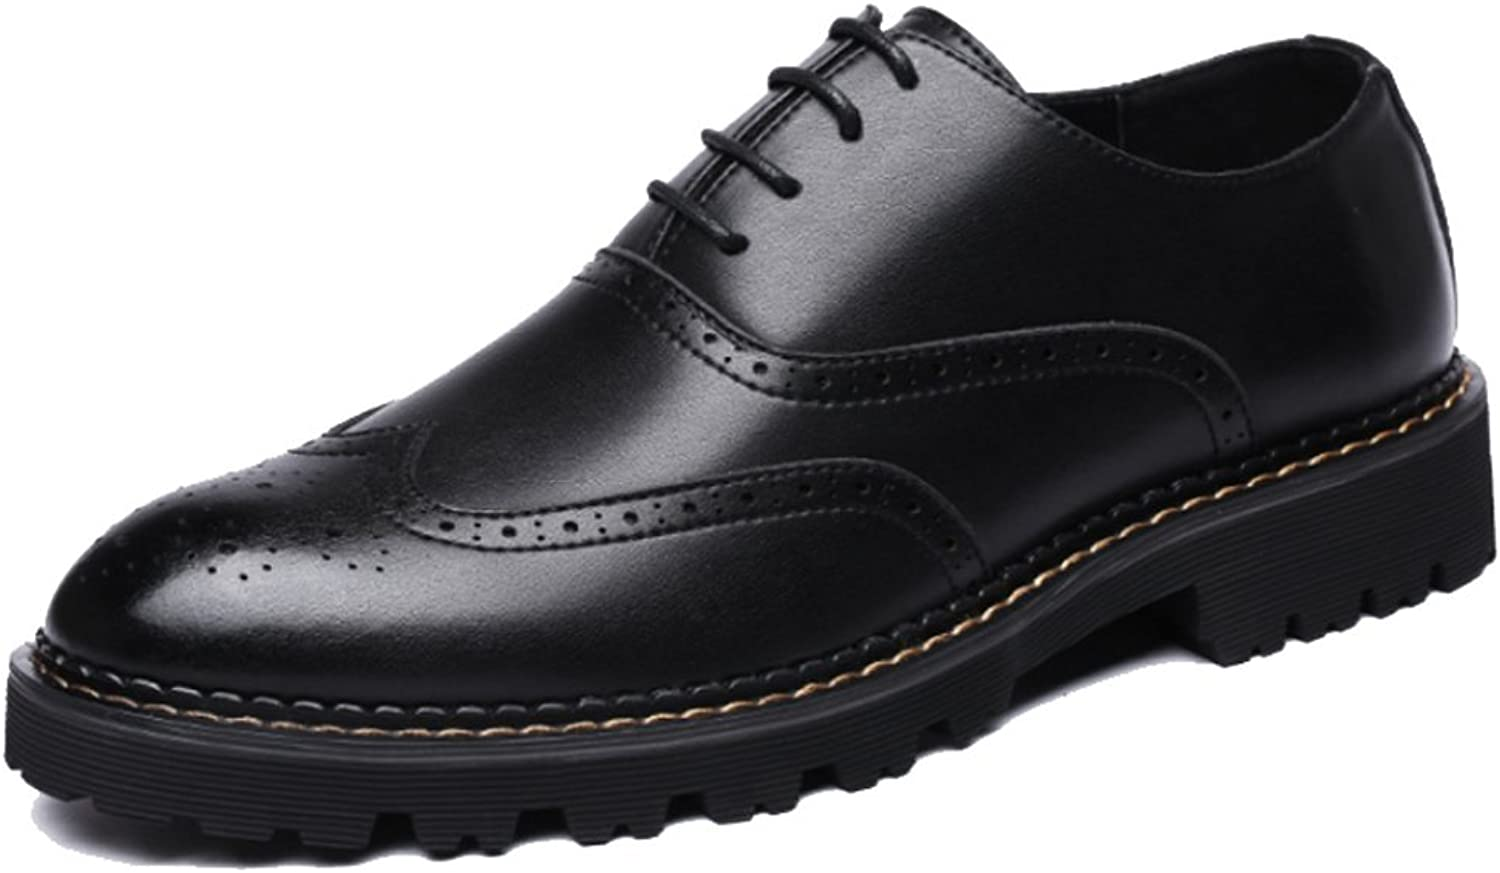 DHFUD Men Business Casual Married Outdoor Brock Leather shoes